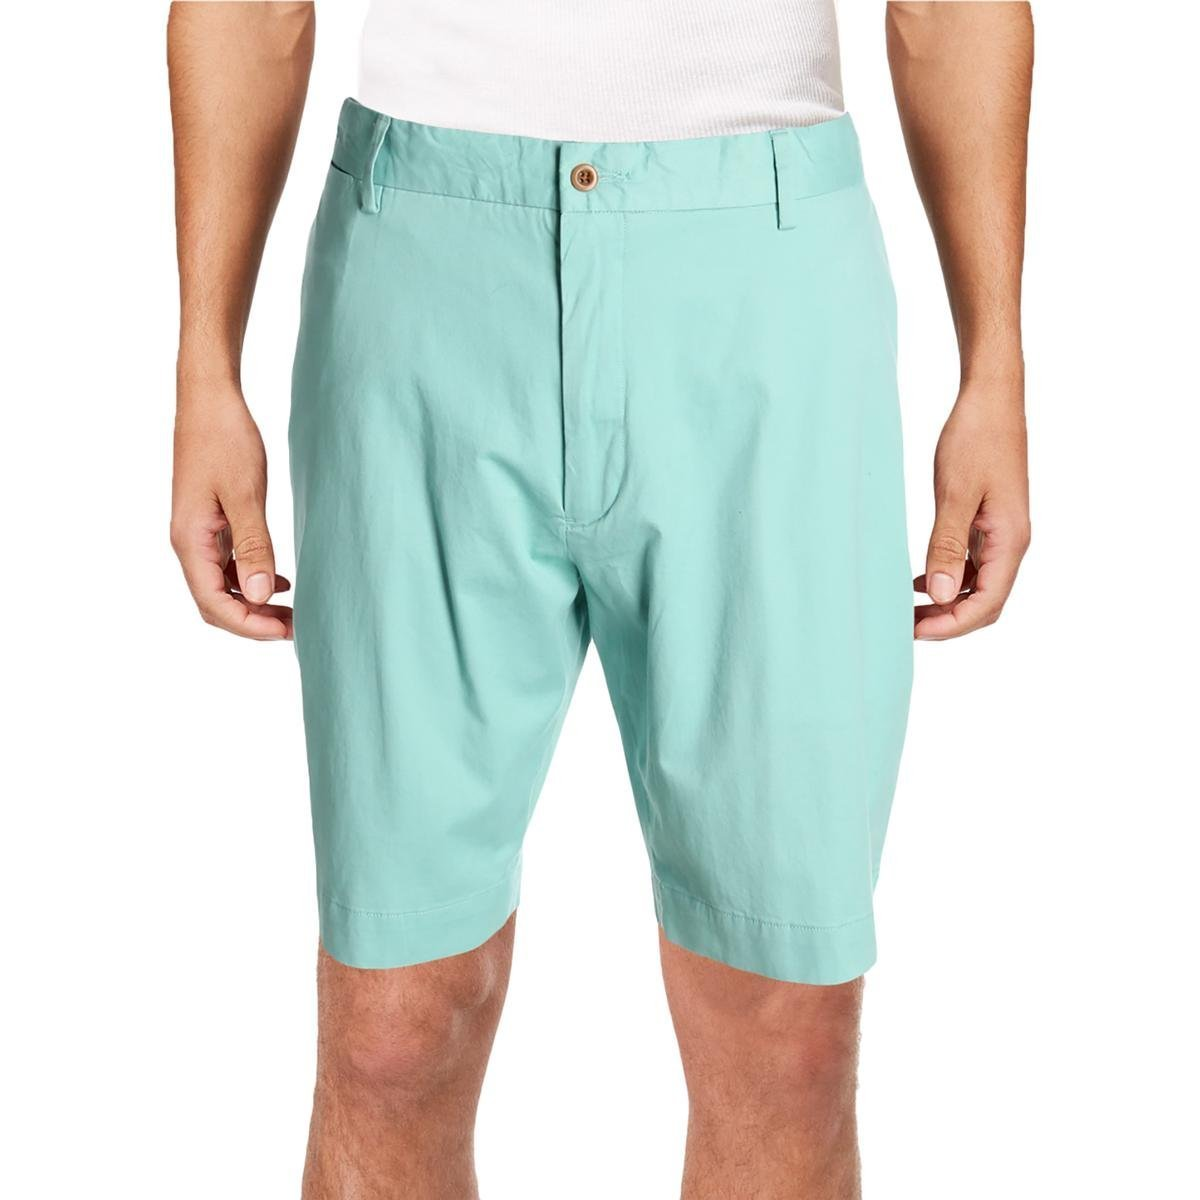 Polo Ralph Lauren Mens Classic-Fit Flat Front Casual Shorts Green 32 by Polo Ralph Lauren